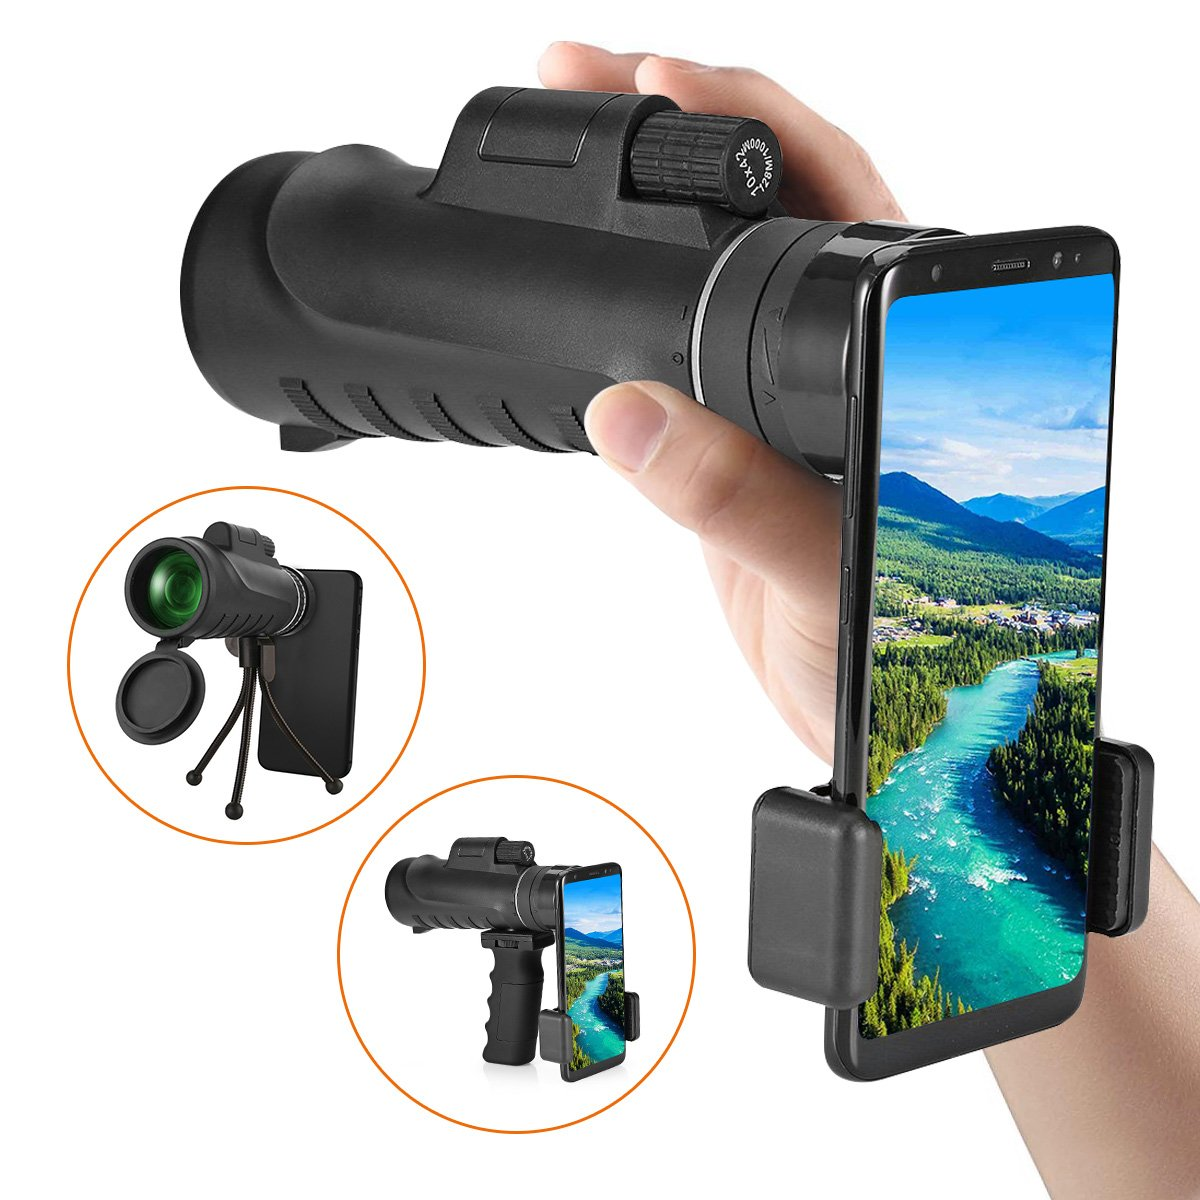 Hizek Monocular Telescope, 10 x 42 High Power Prism Monocular with Smartphone Holder and Handheld Stand and Tripod for Bird Watching Fishing Hunting Camping Travelling